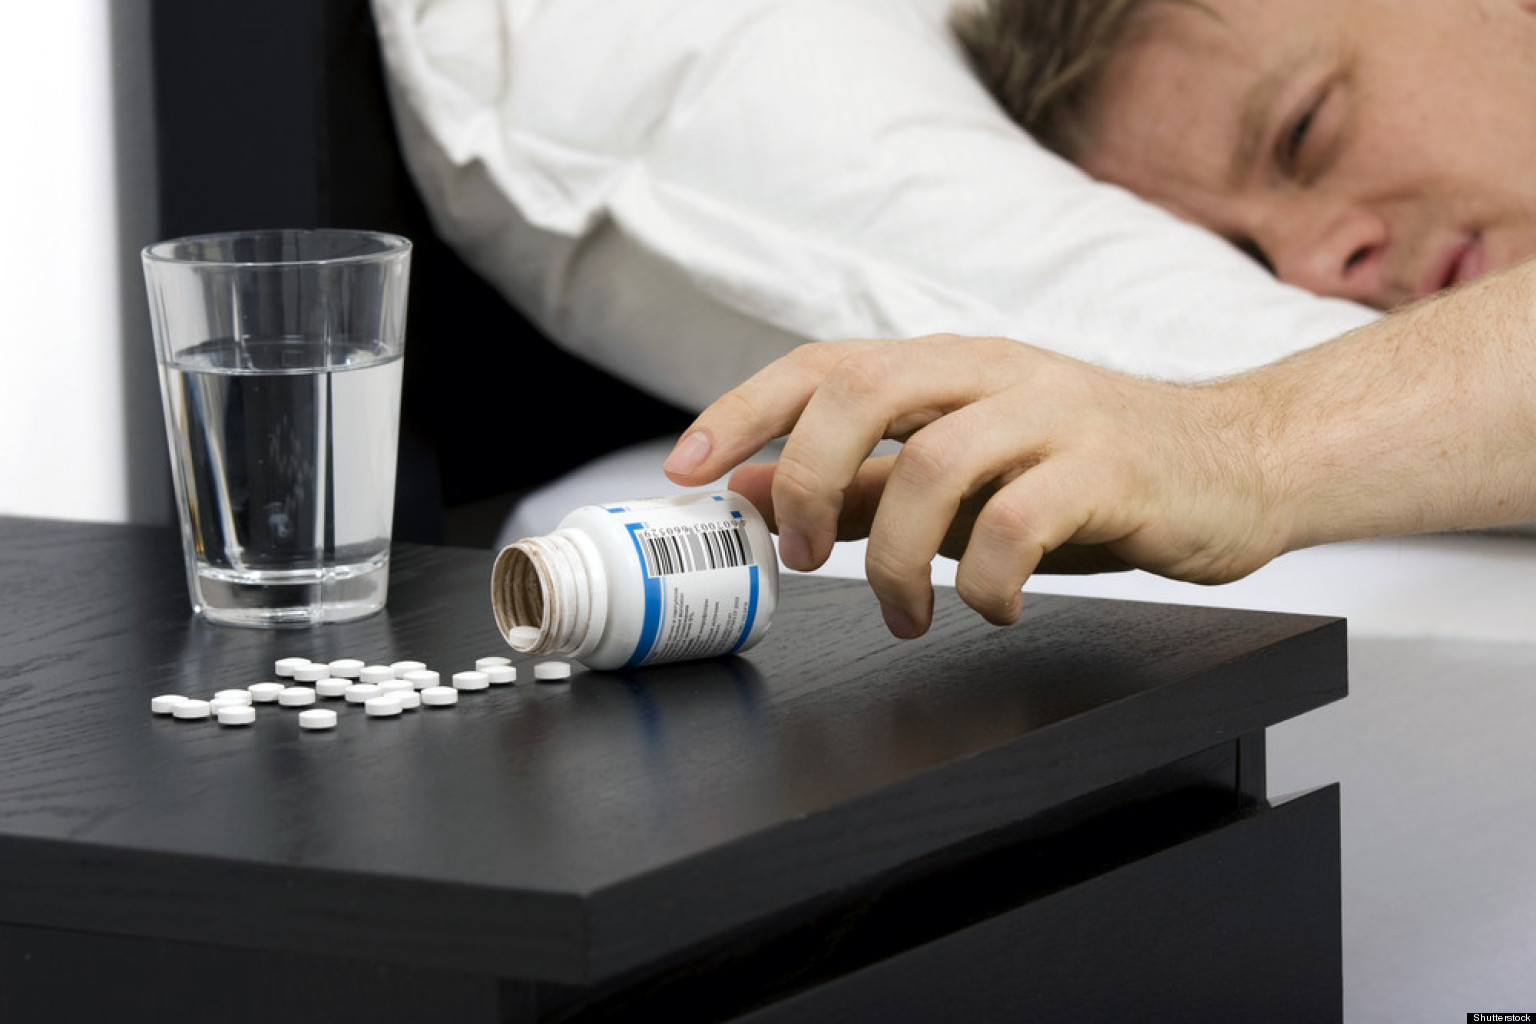 What You Need to Know About Sleeping Pills